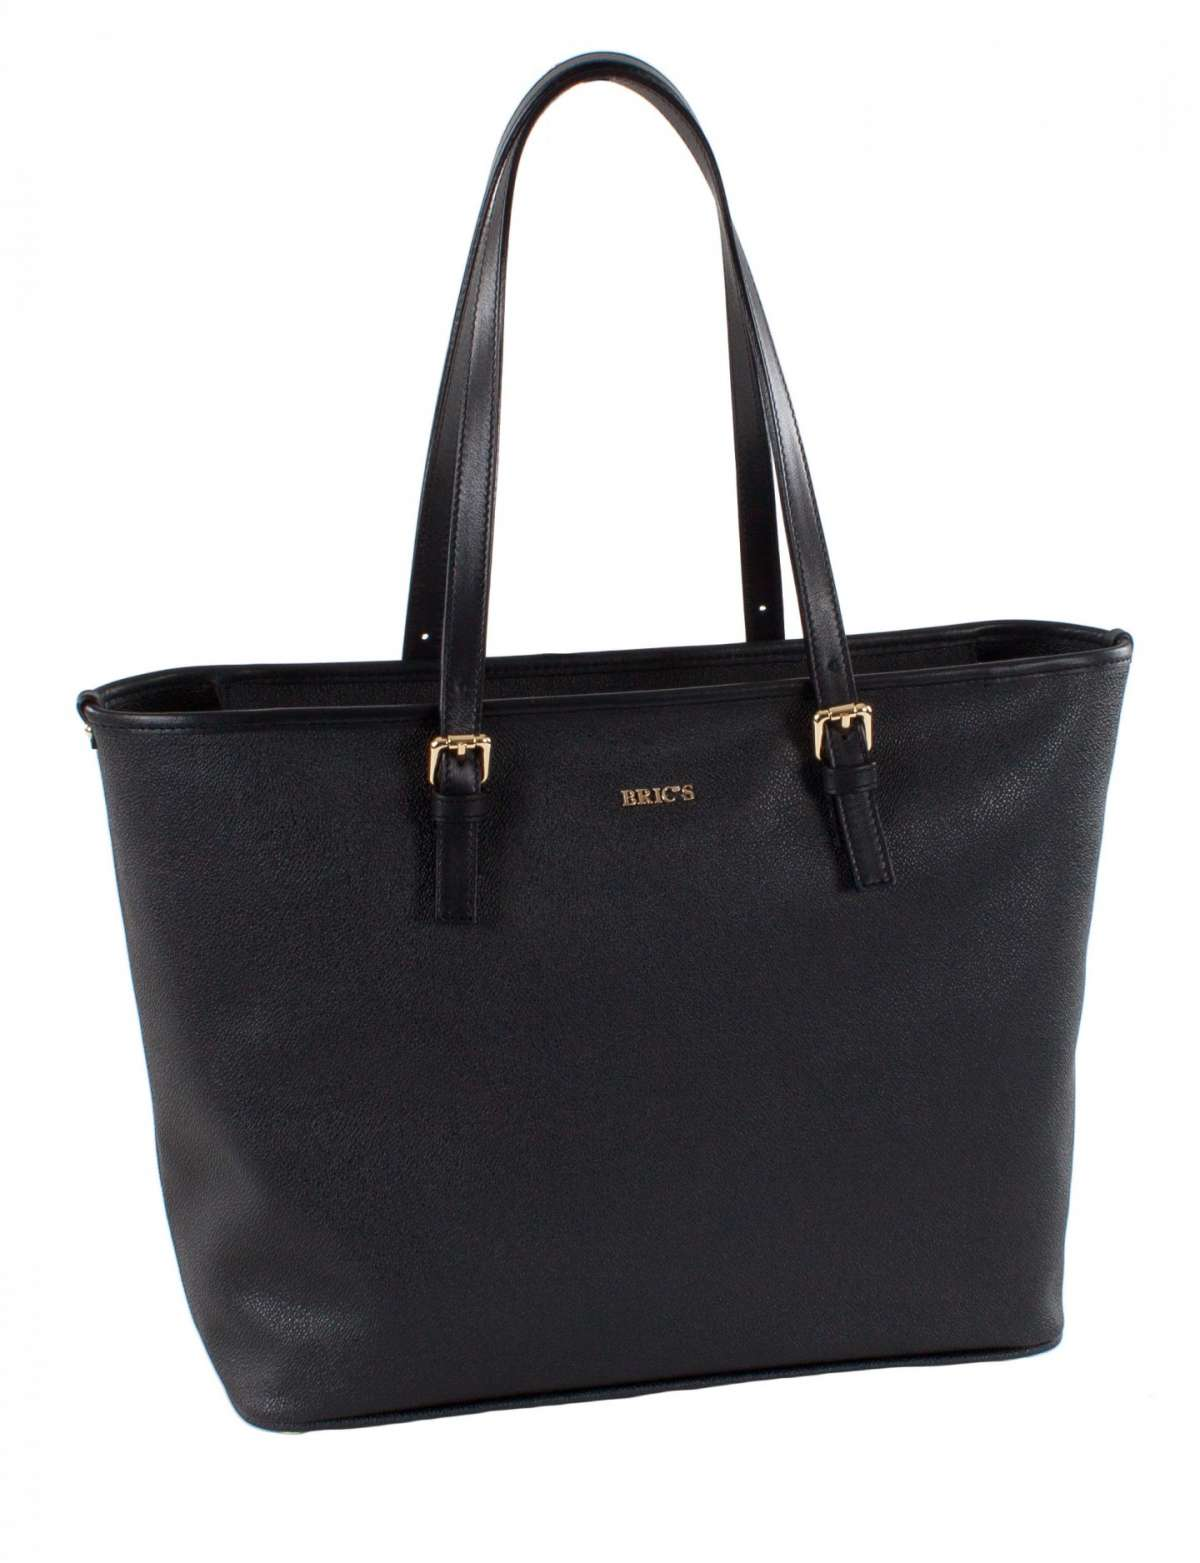 Shopping bag nera